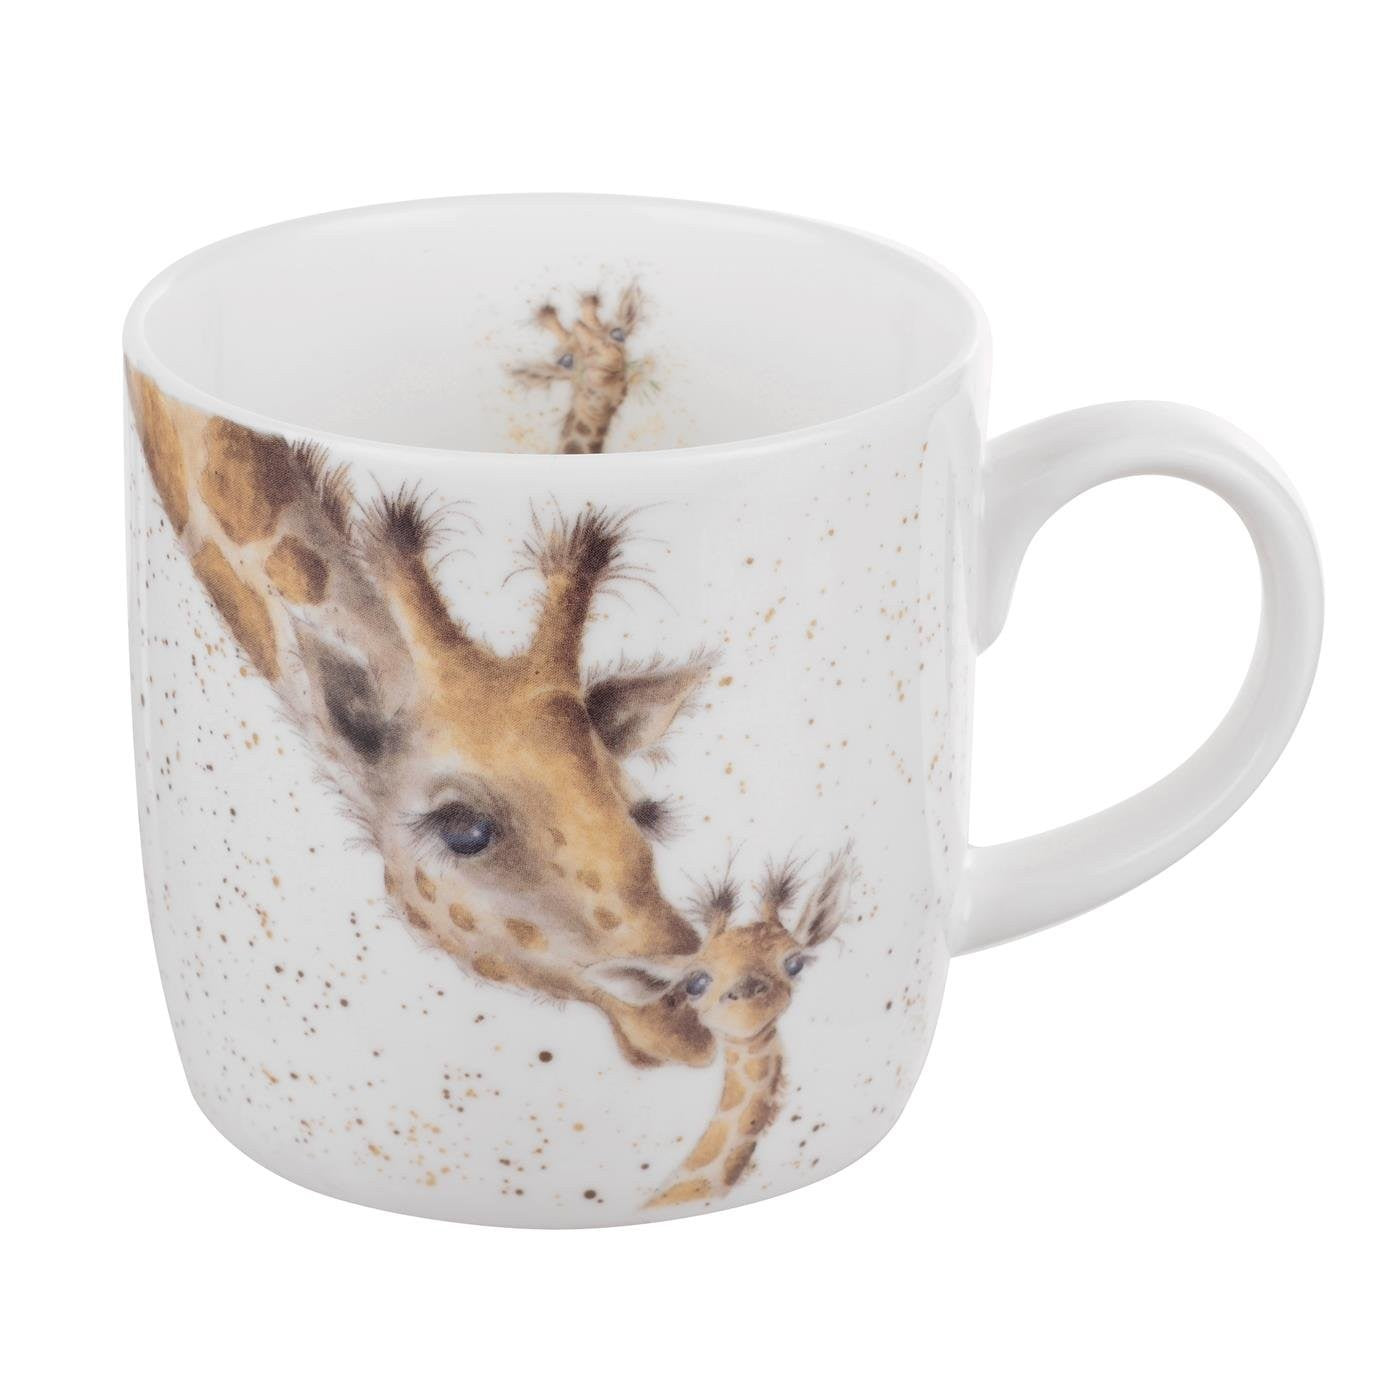 Royal Worcester Wrendale Designs - Giraffe Mug First Kiss